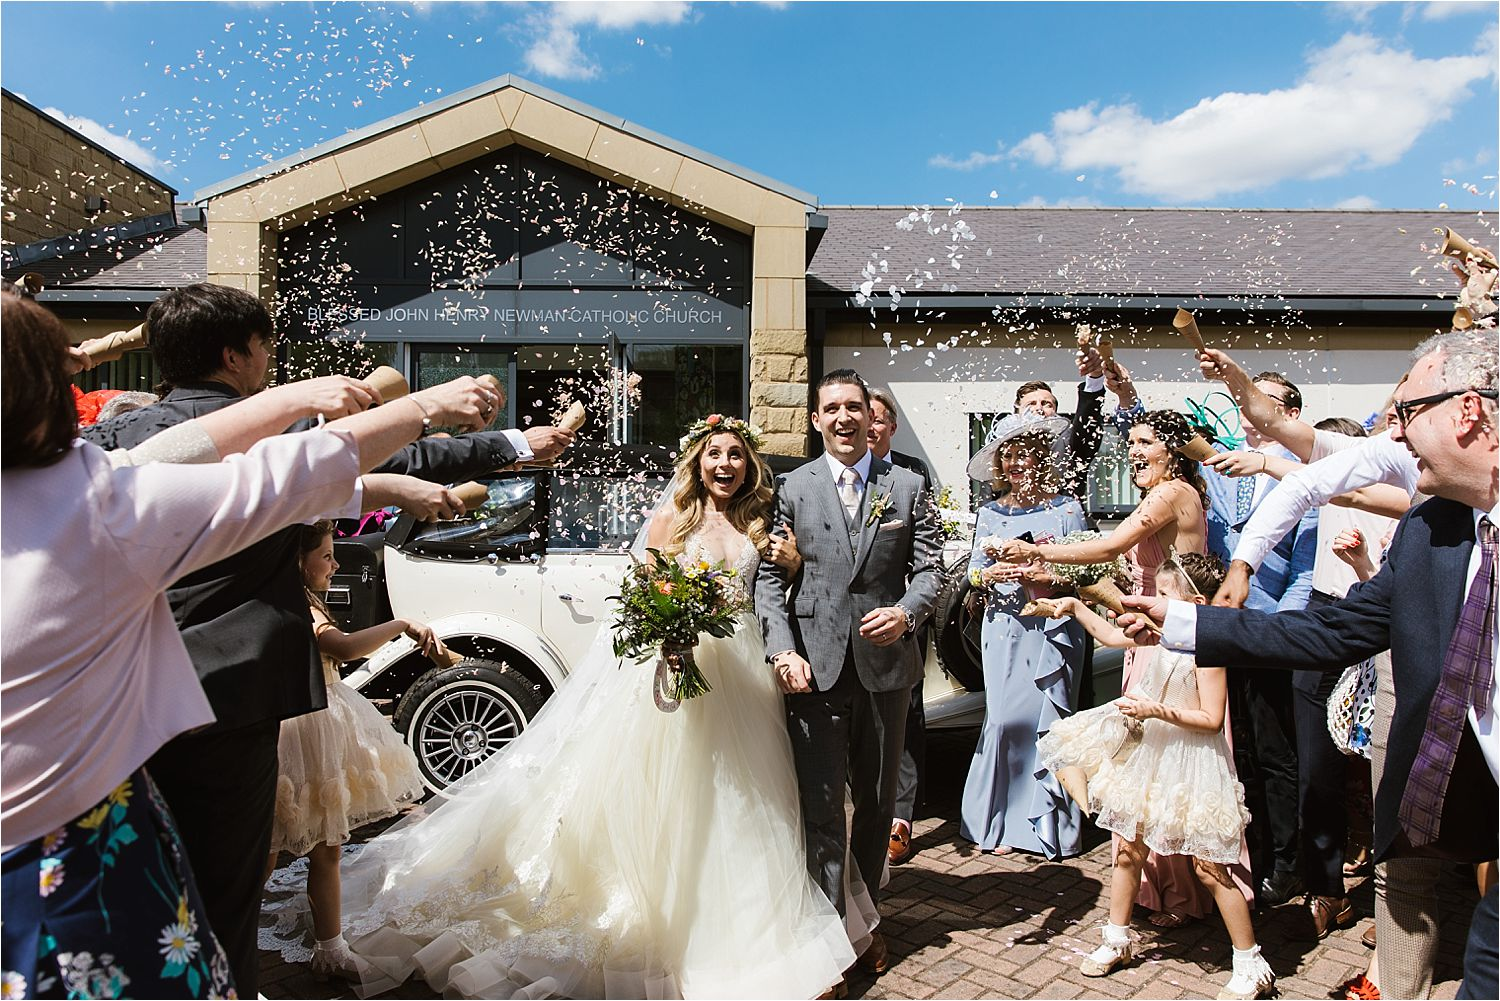 Bride and groom walk through confetti shower outside church at Cheshire wedding